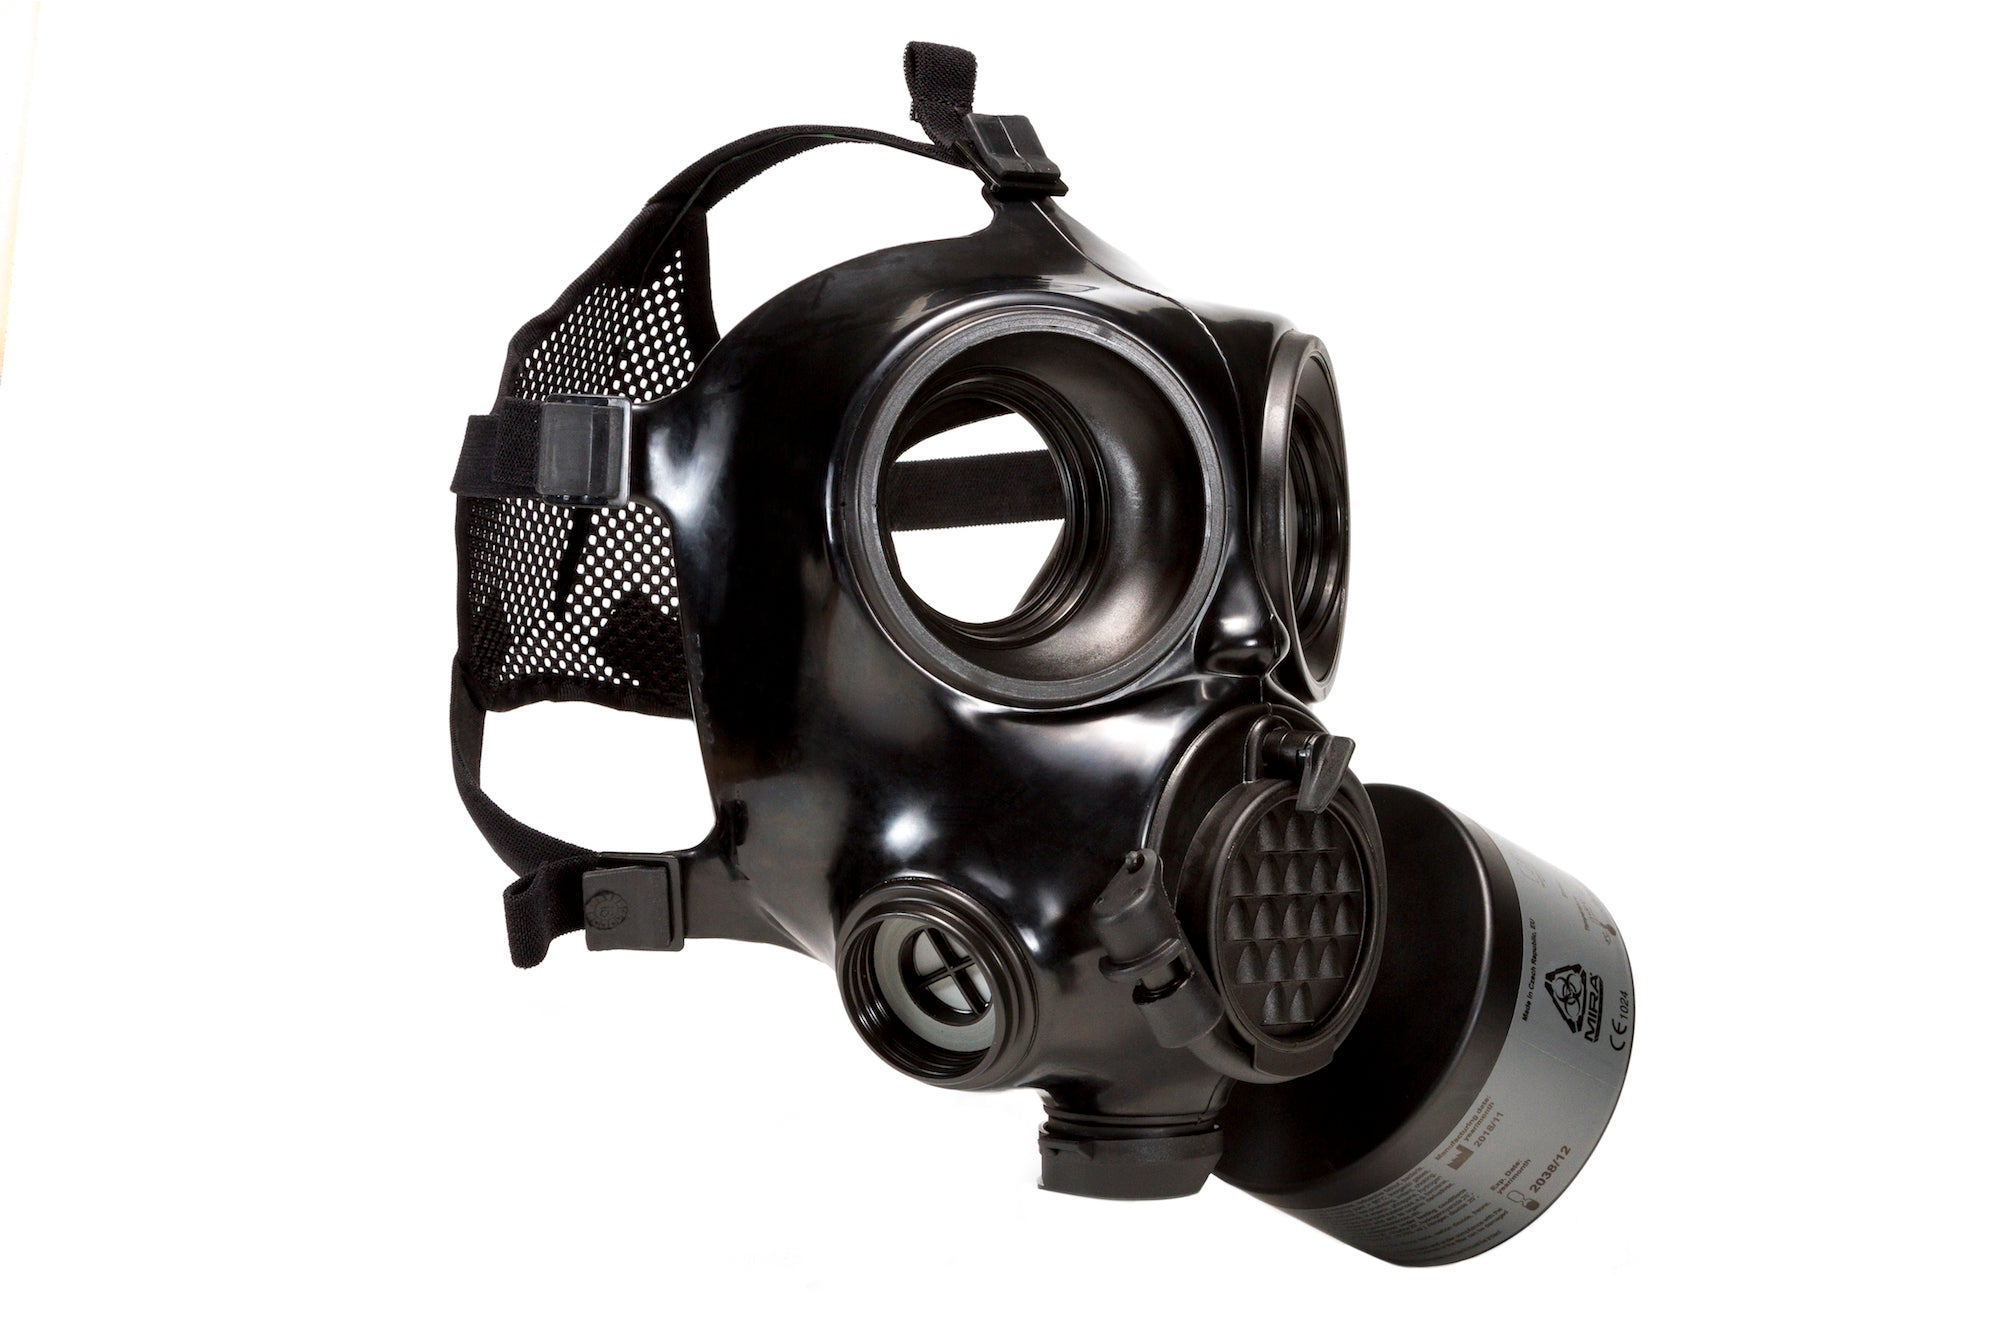 Three quarter view of the CM-7M Military Gas Mask